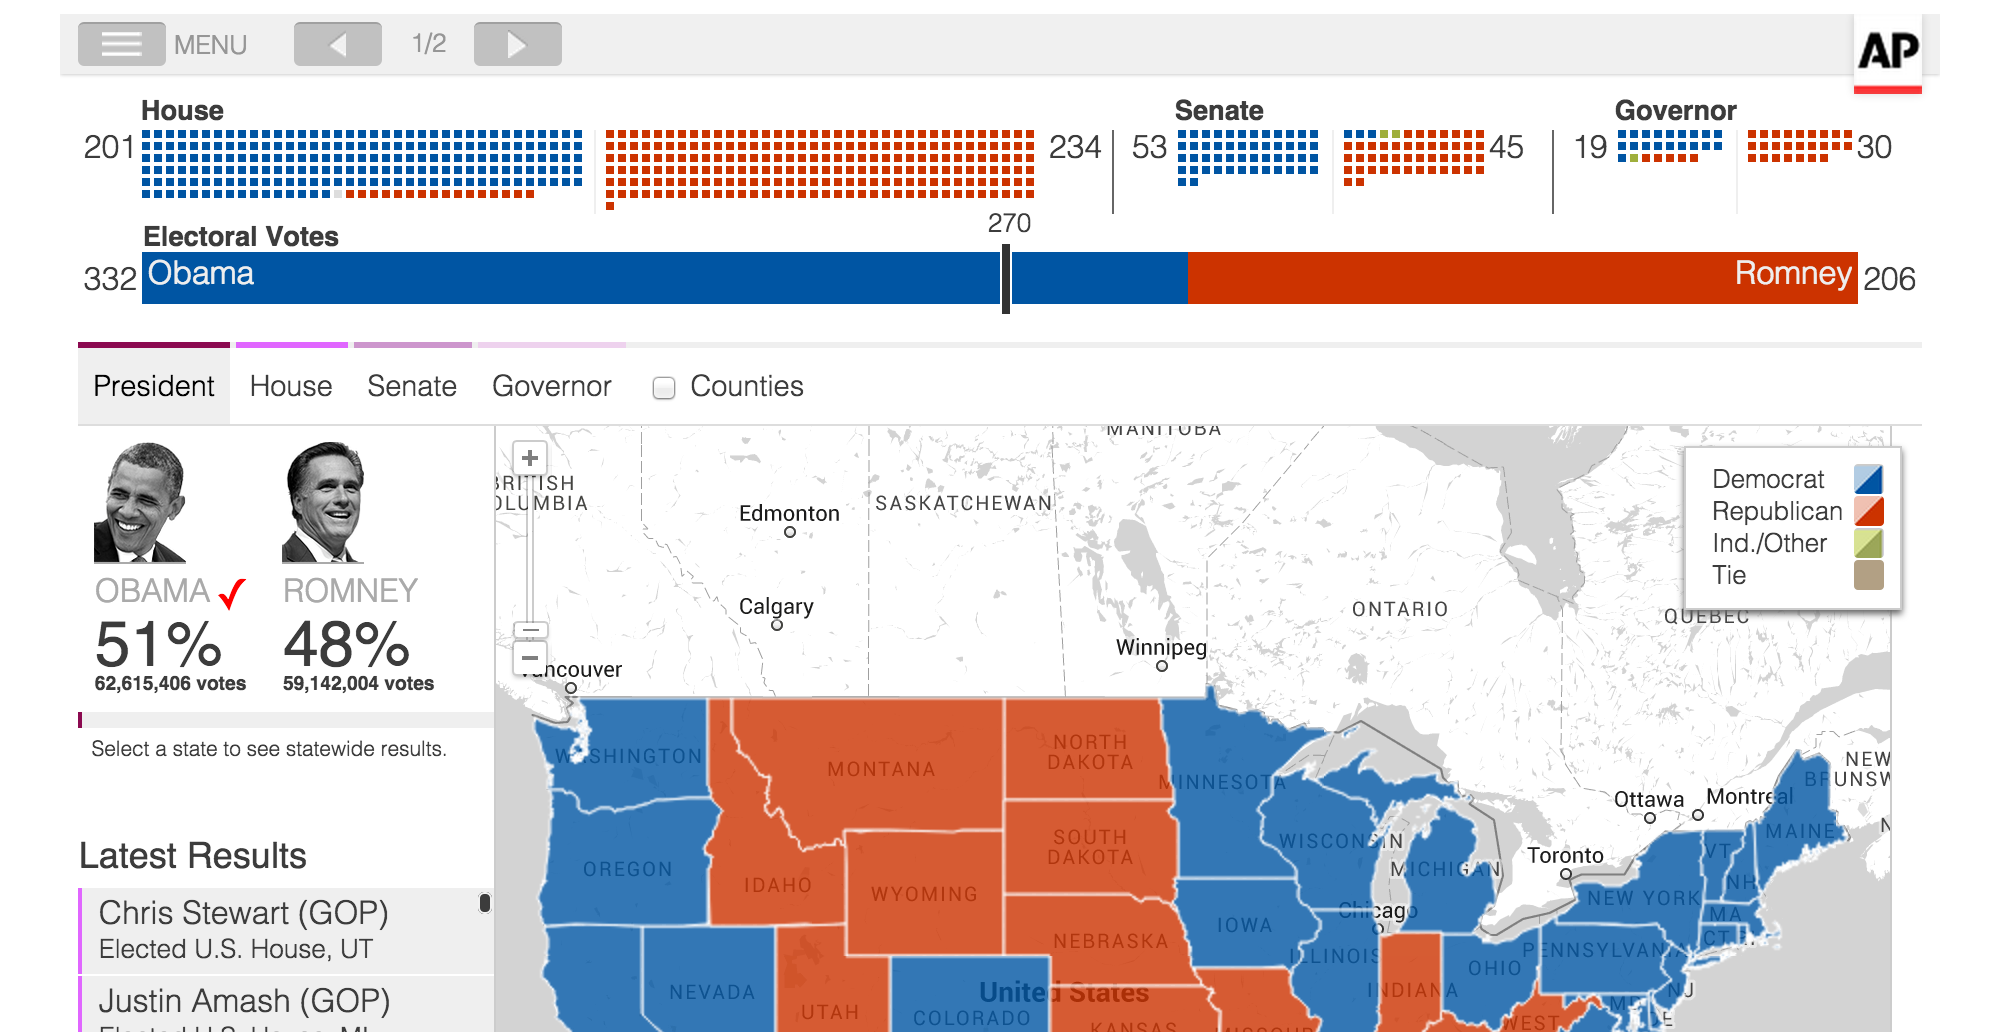 Via Nate Silver Fivethirtyeight Which Polls Fared Best And Worst In The 2012 Presidential Race